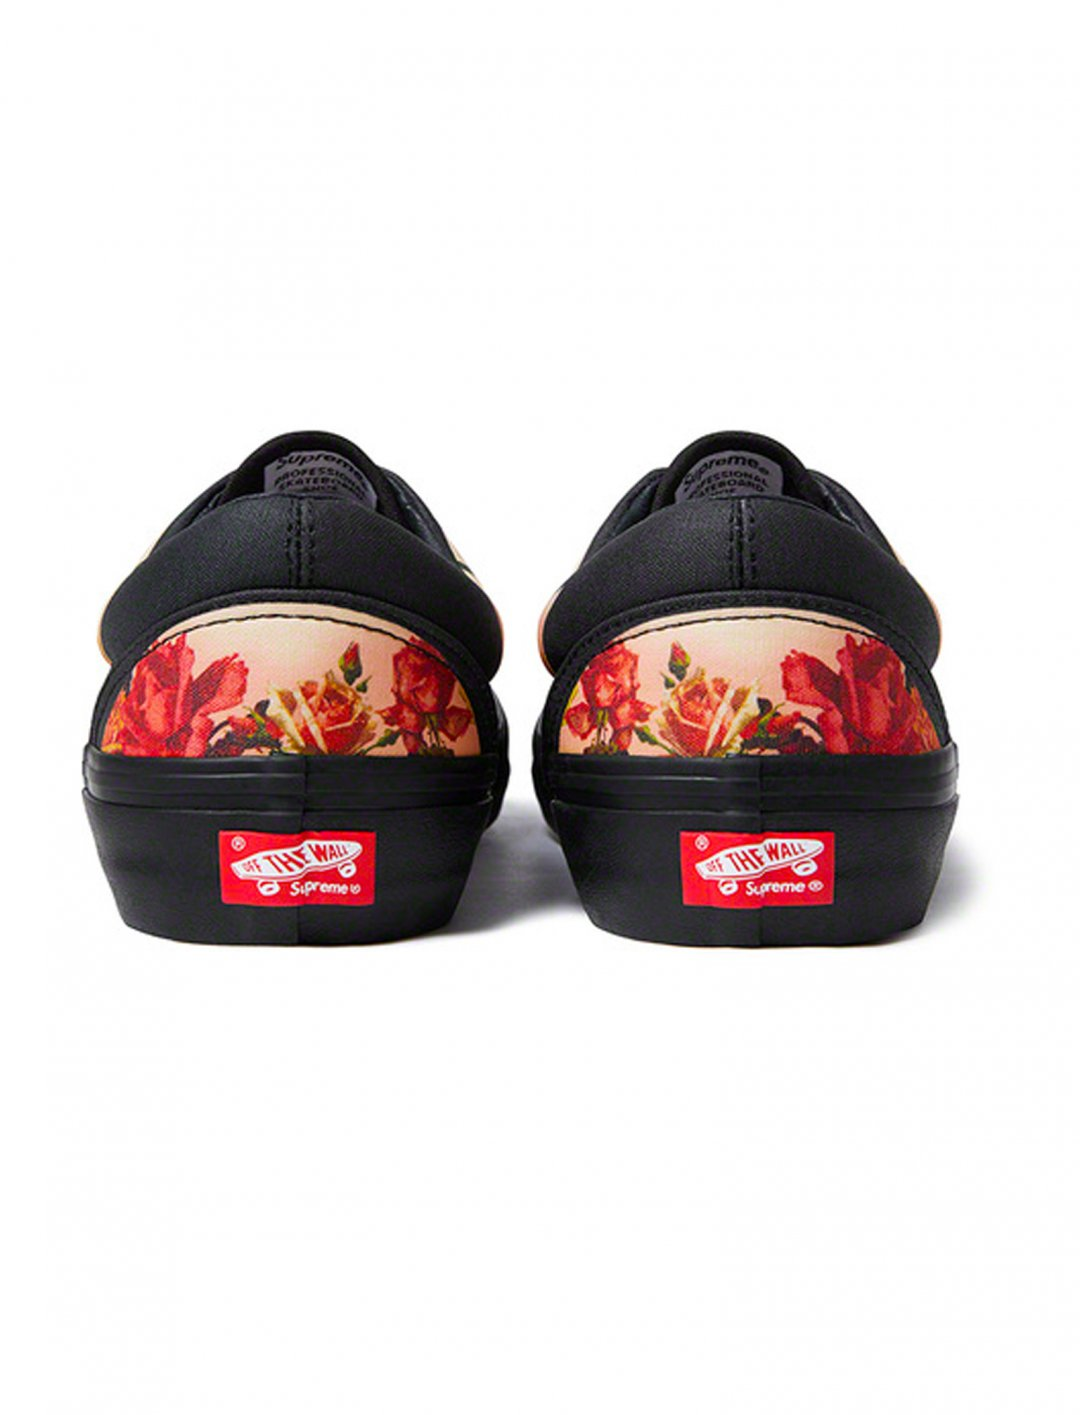 "Floral Print Era Shoes {""id"":12,""product_section_id"":1,""name"":""Shoes"",""order"":12} Jean Paul Gaultier x Supreme"